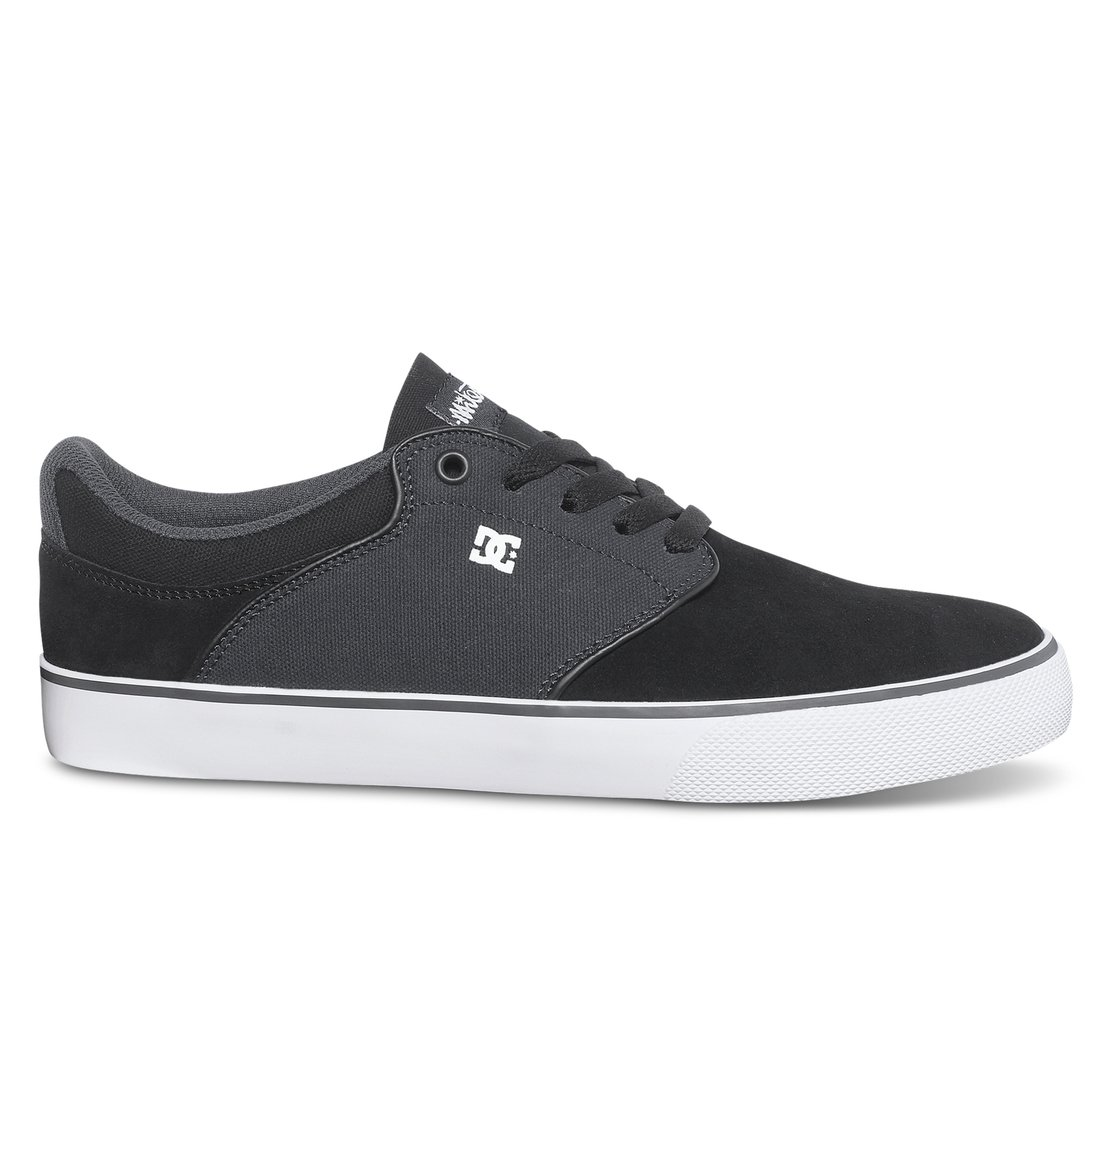 Dc Shoes Mens Mikey Taylor Vulc Shoe Men JL94811